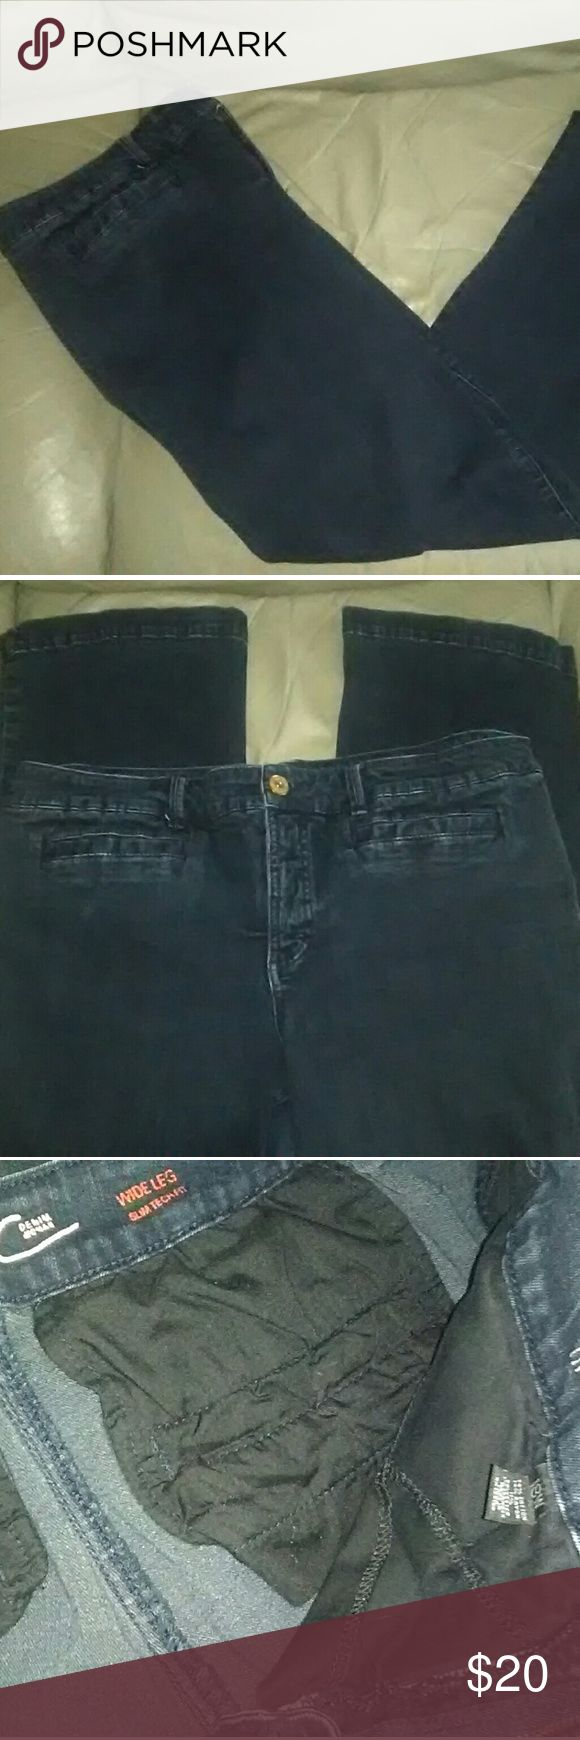 INC Woman Denim Wide Leg Jeans Sz 18W NWOT! INC (International Concepts) Woman Denim Slim Tech Fit Wide Leg Jeans NWOT!  Color:  Faded Midnight Material: 74% Cotton, 14% Rayon, 11% Polyester, And 1% Spandex Size: 18W Measurements: 20 Waist, 23 Hips, 31 Length/Inseam, And 11 Rise INC International Concepts Jeans Flare & Wide Leg